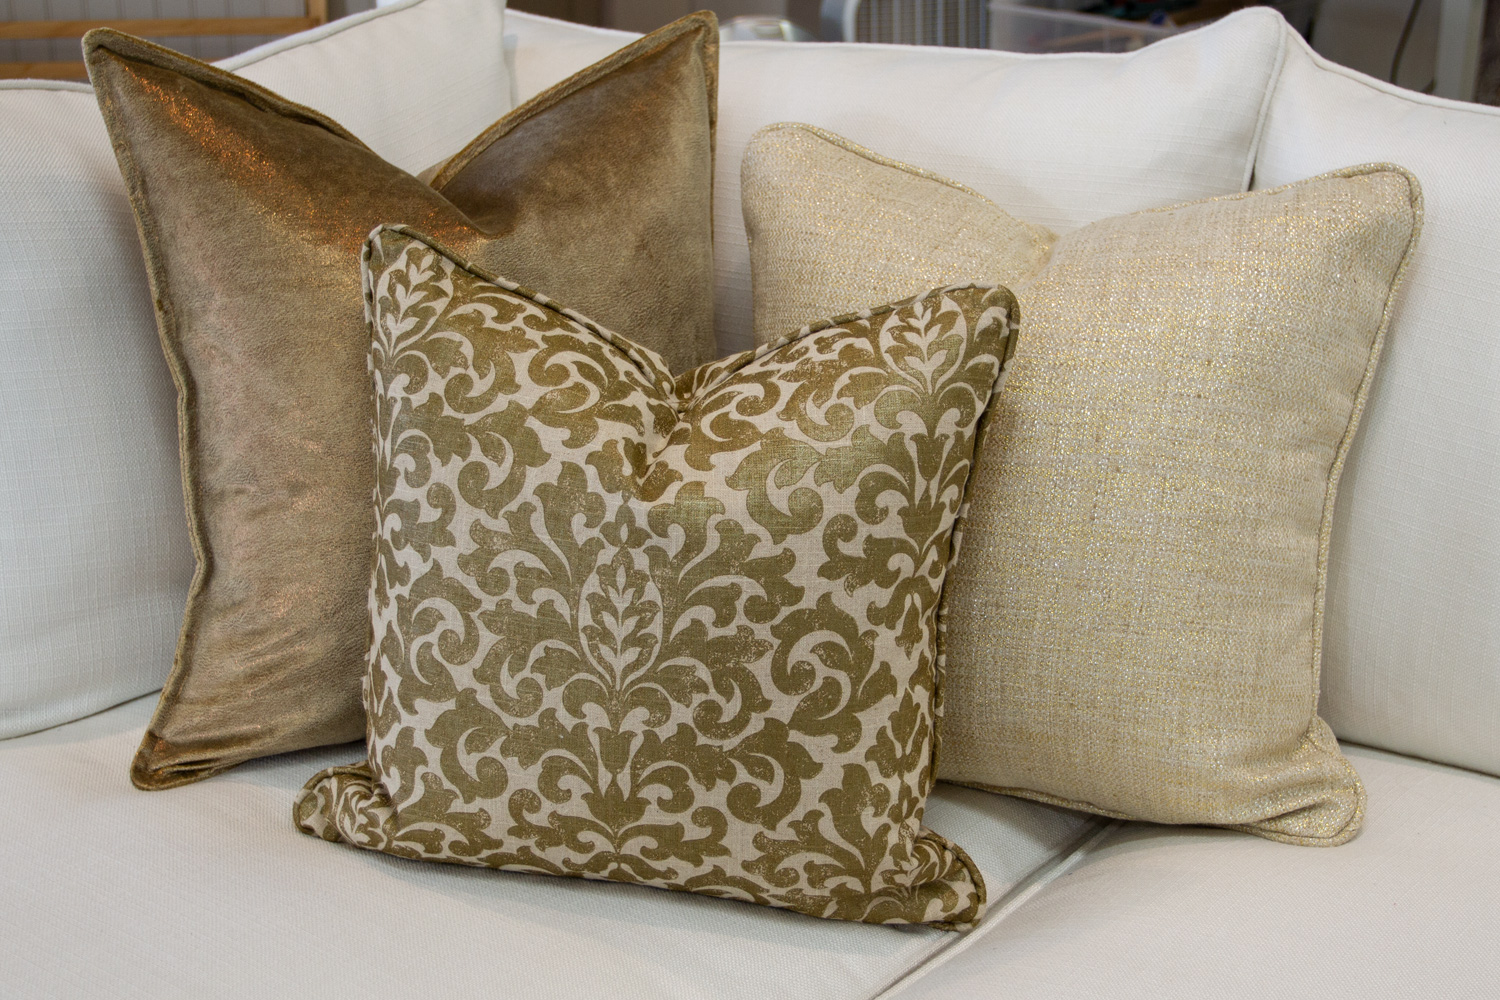 Chameleon Style 12 Days Of Pillows 2018 Golden Glam Day 11 Chameleon Style